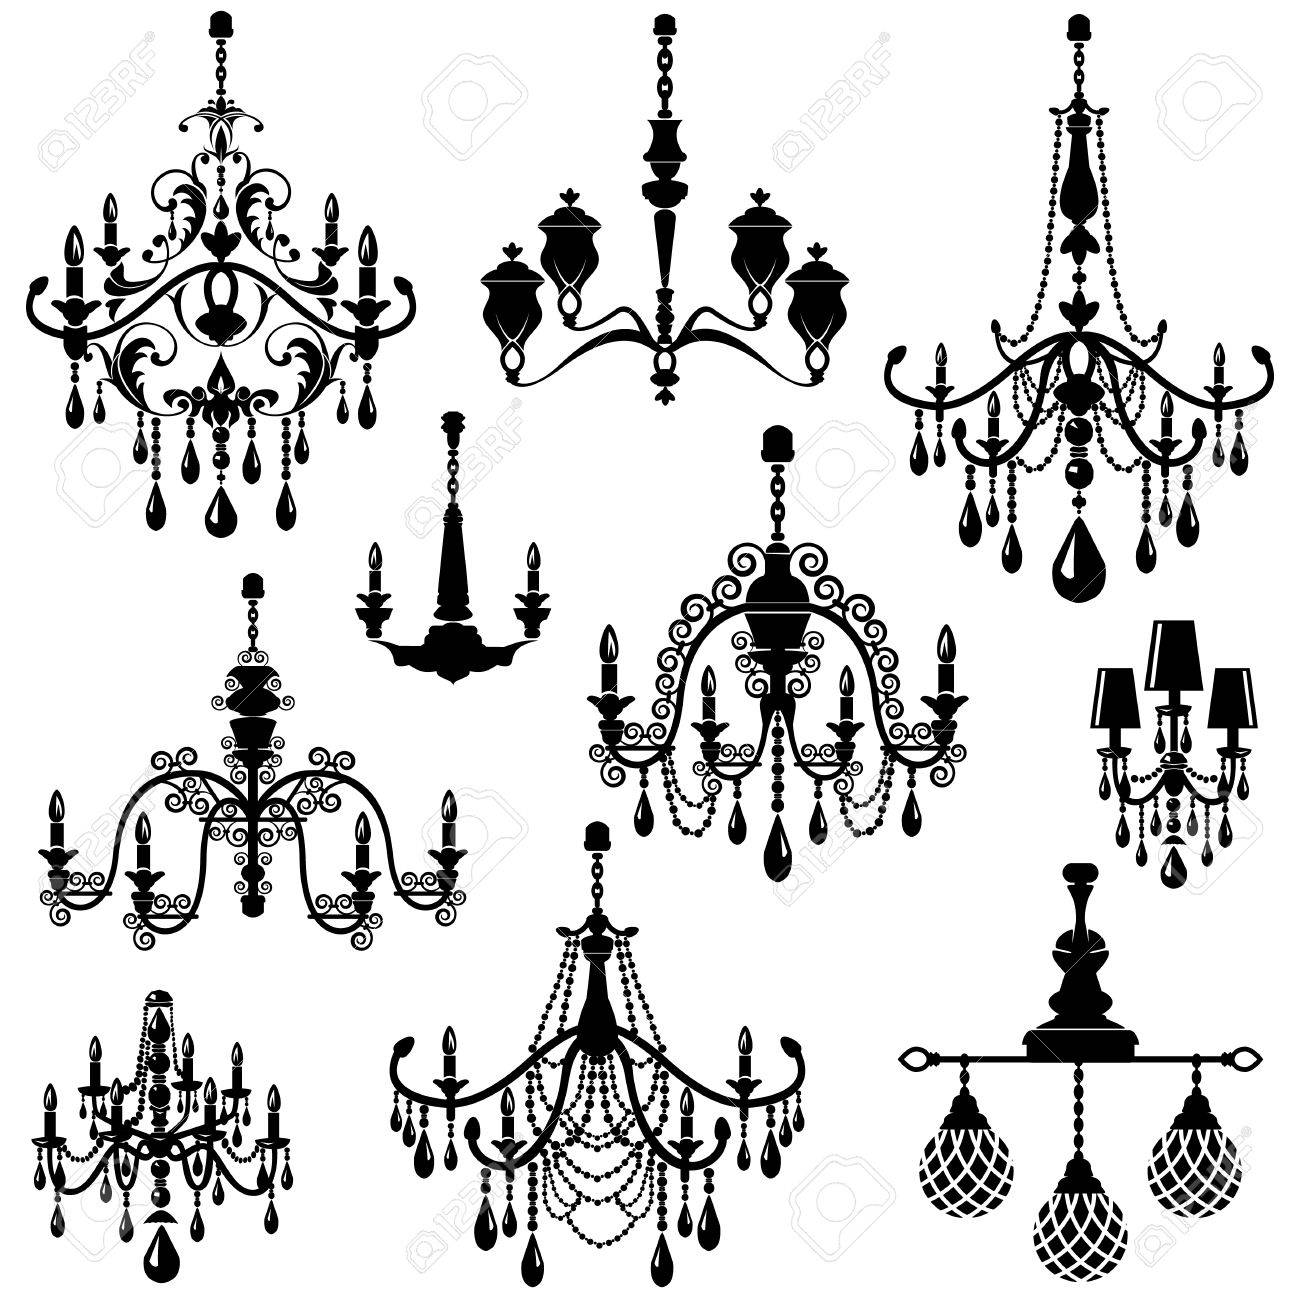 Set Of Decorative Elegant Luxury Vintage Crystal Chandelier Icons Black Silhouette Er Isolated On White